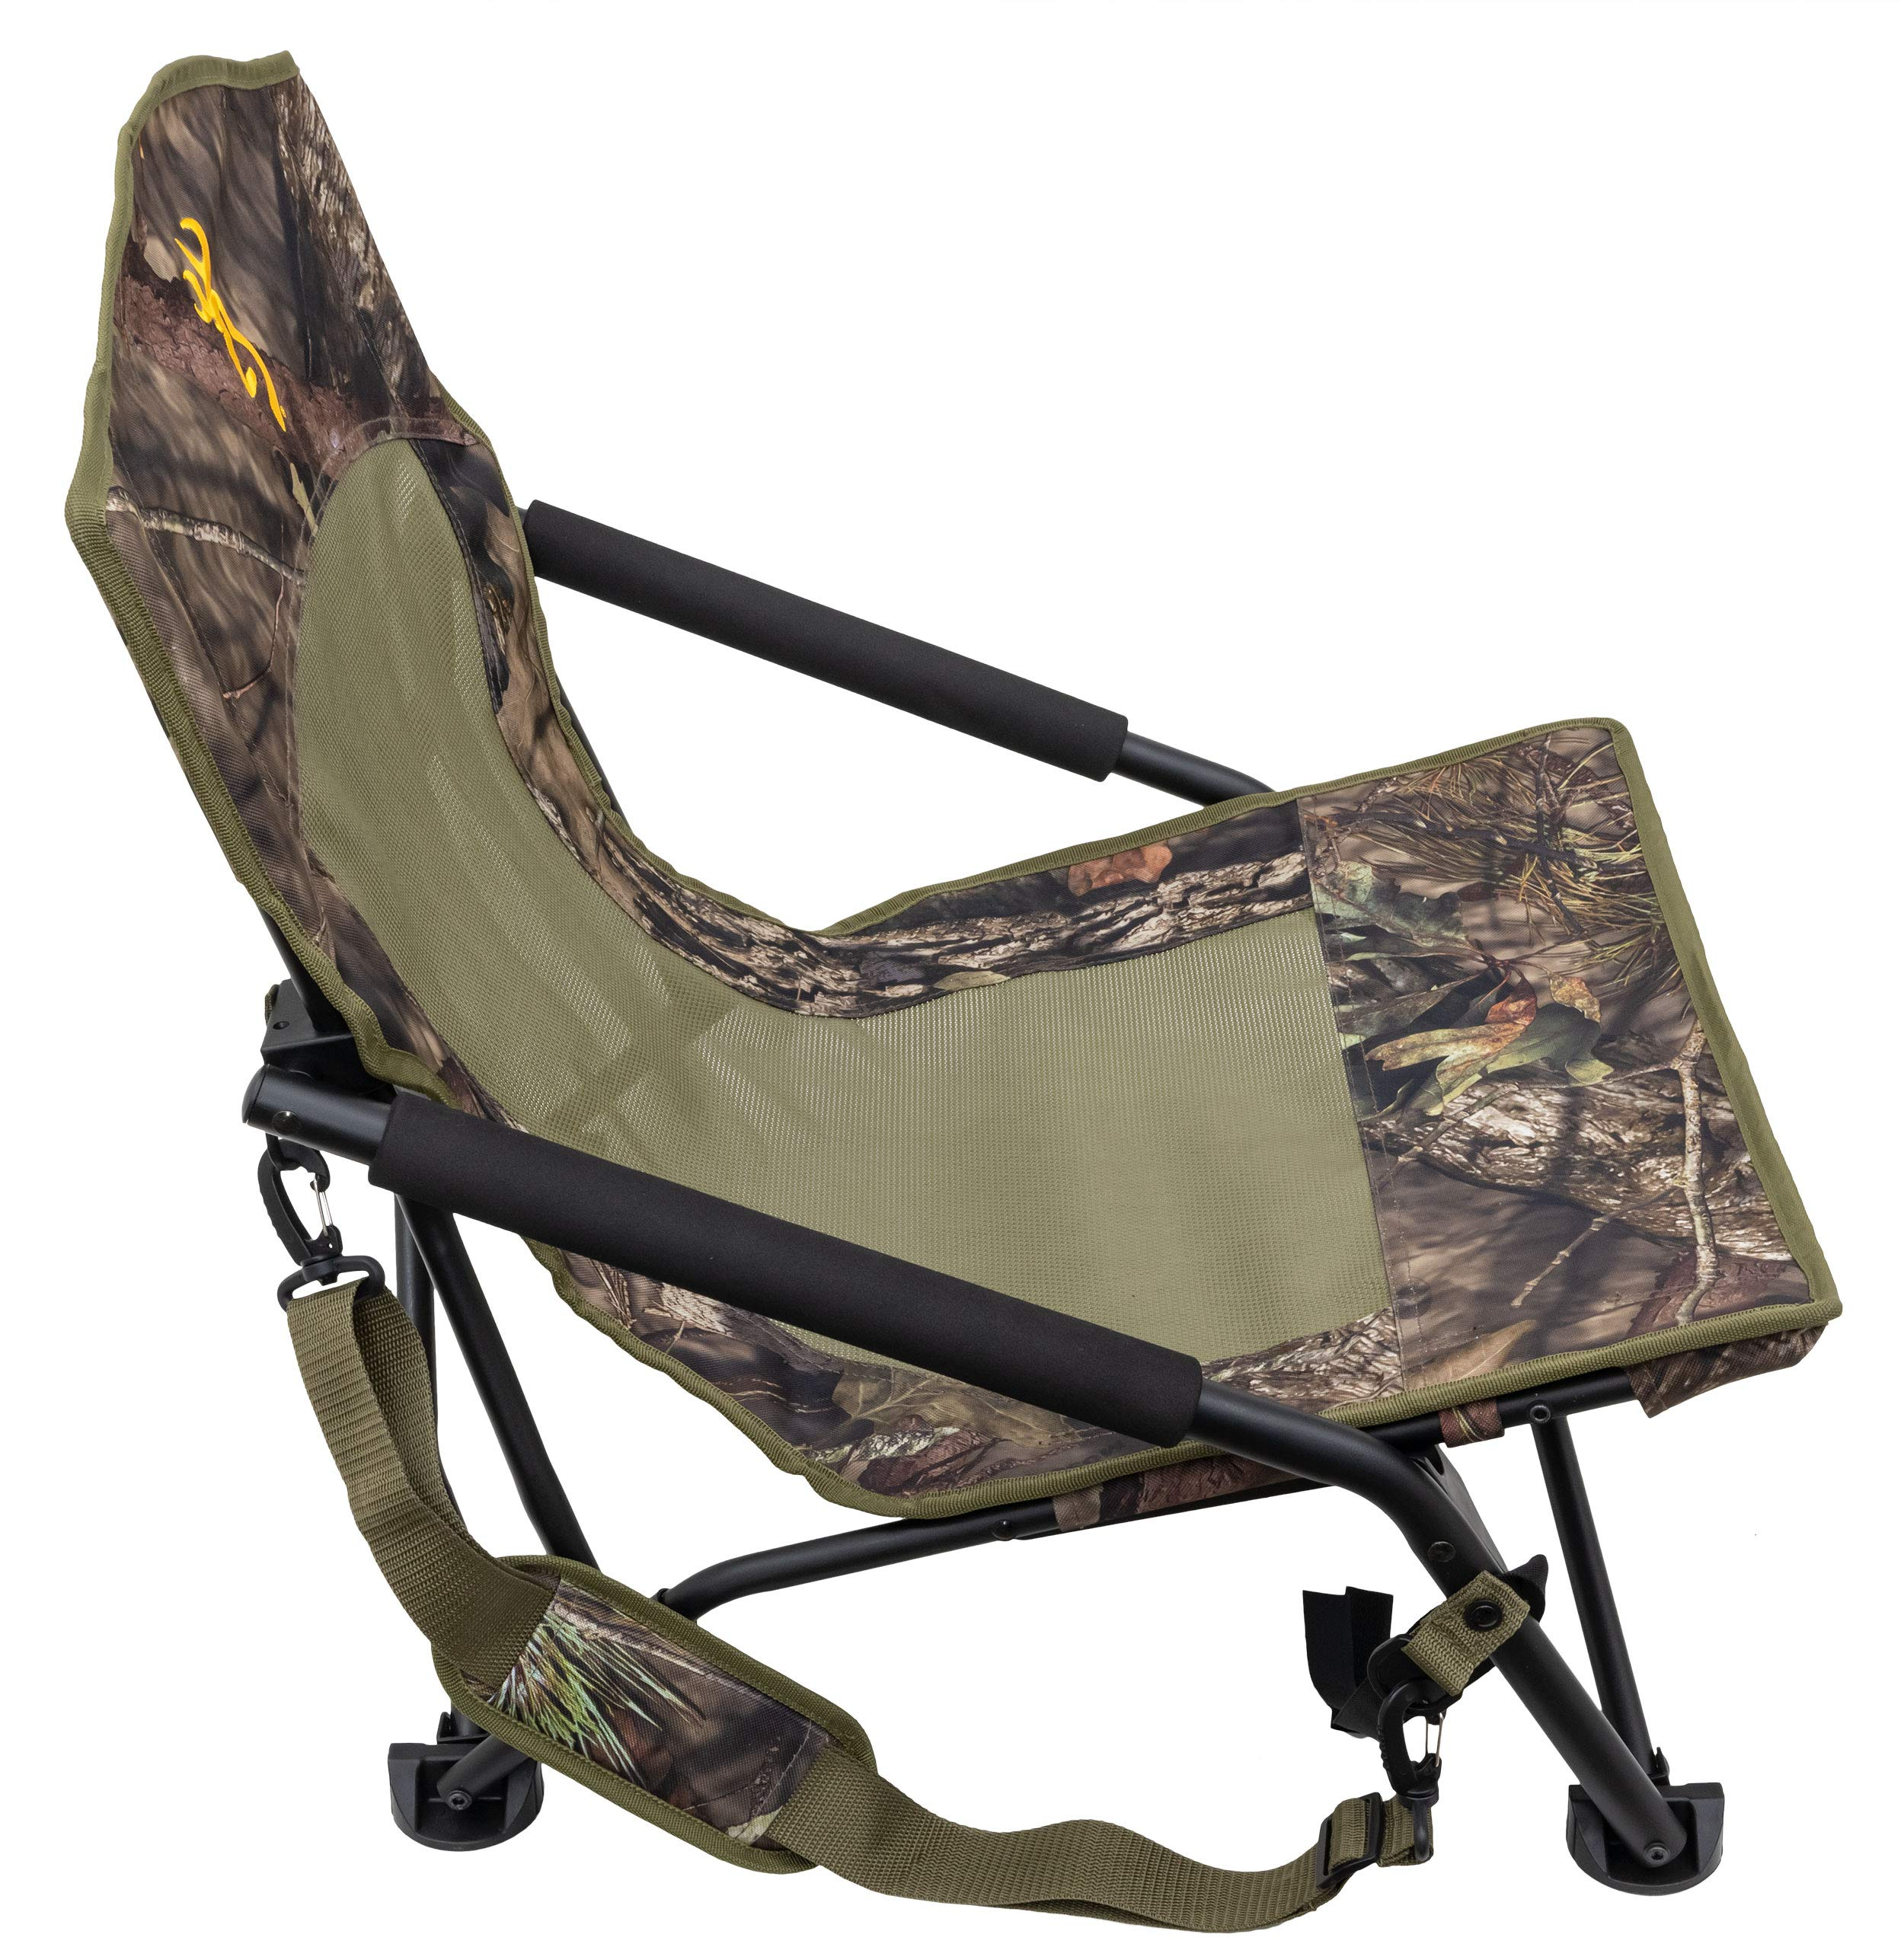 Fantastic Browning Camping Strutter Hunting Chair Fifth Degree Inzonedesignstudio Interior Chair Design Inzonedesignstudiocom